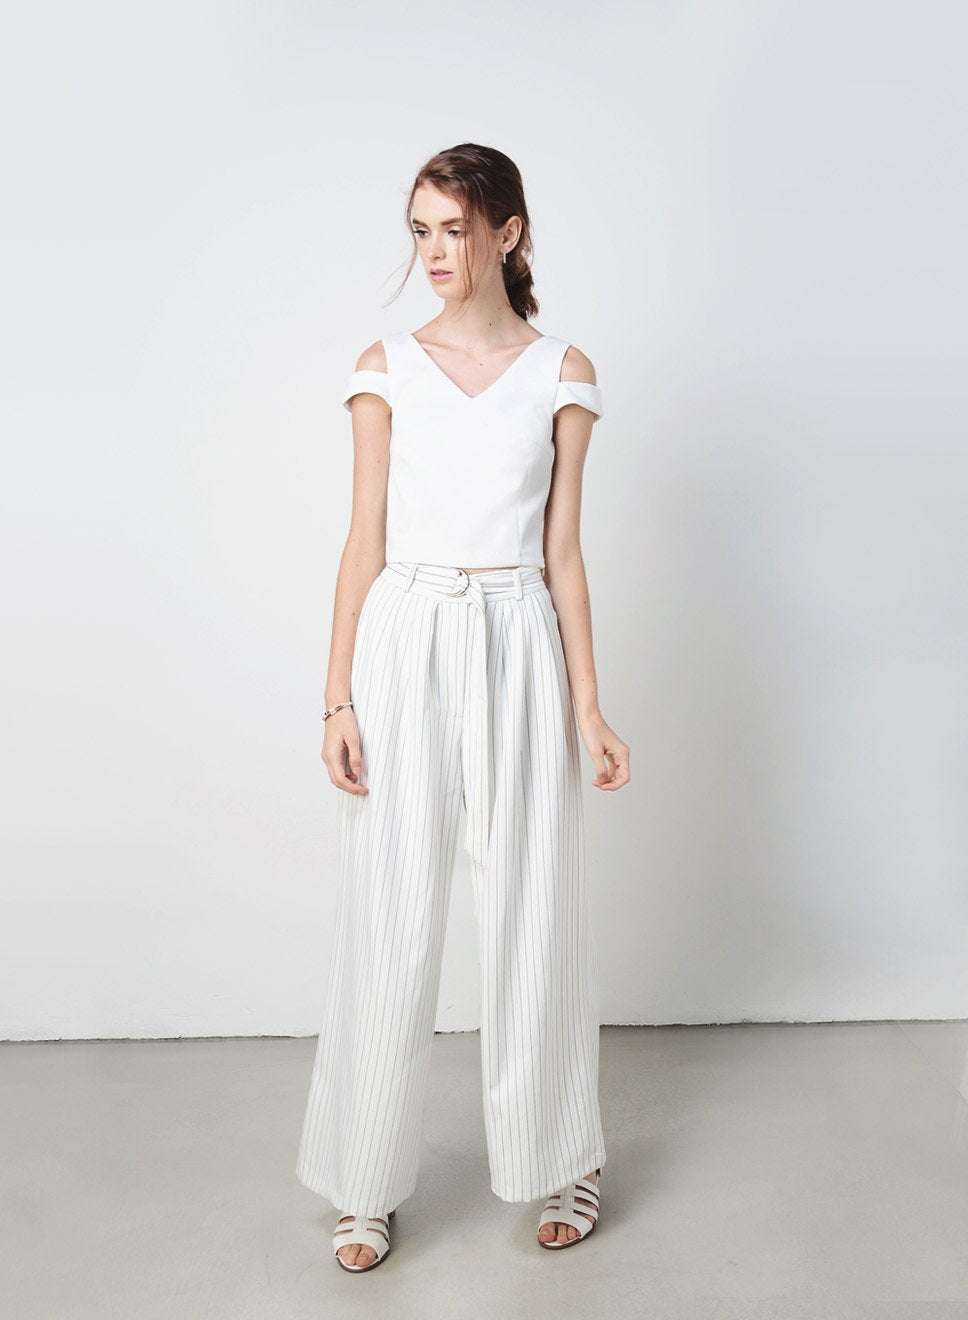 WEEKENDER Wide Leg Pants (Pinstripe White) at $ 18.30 only sold at And Well Dressed Online Fashion Store Singapore